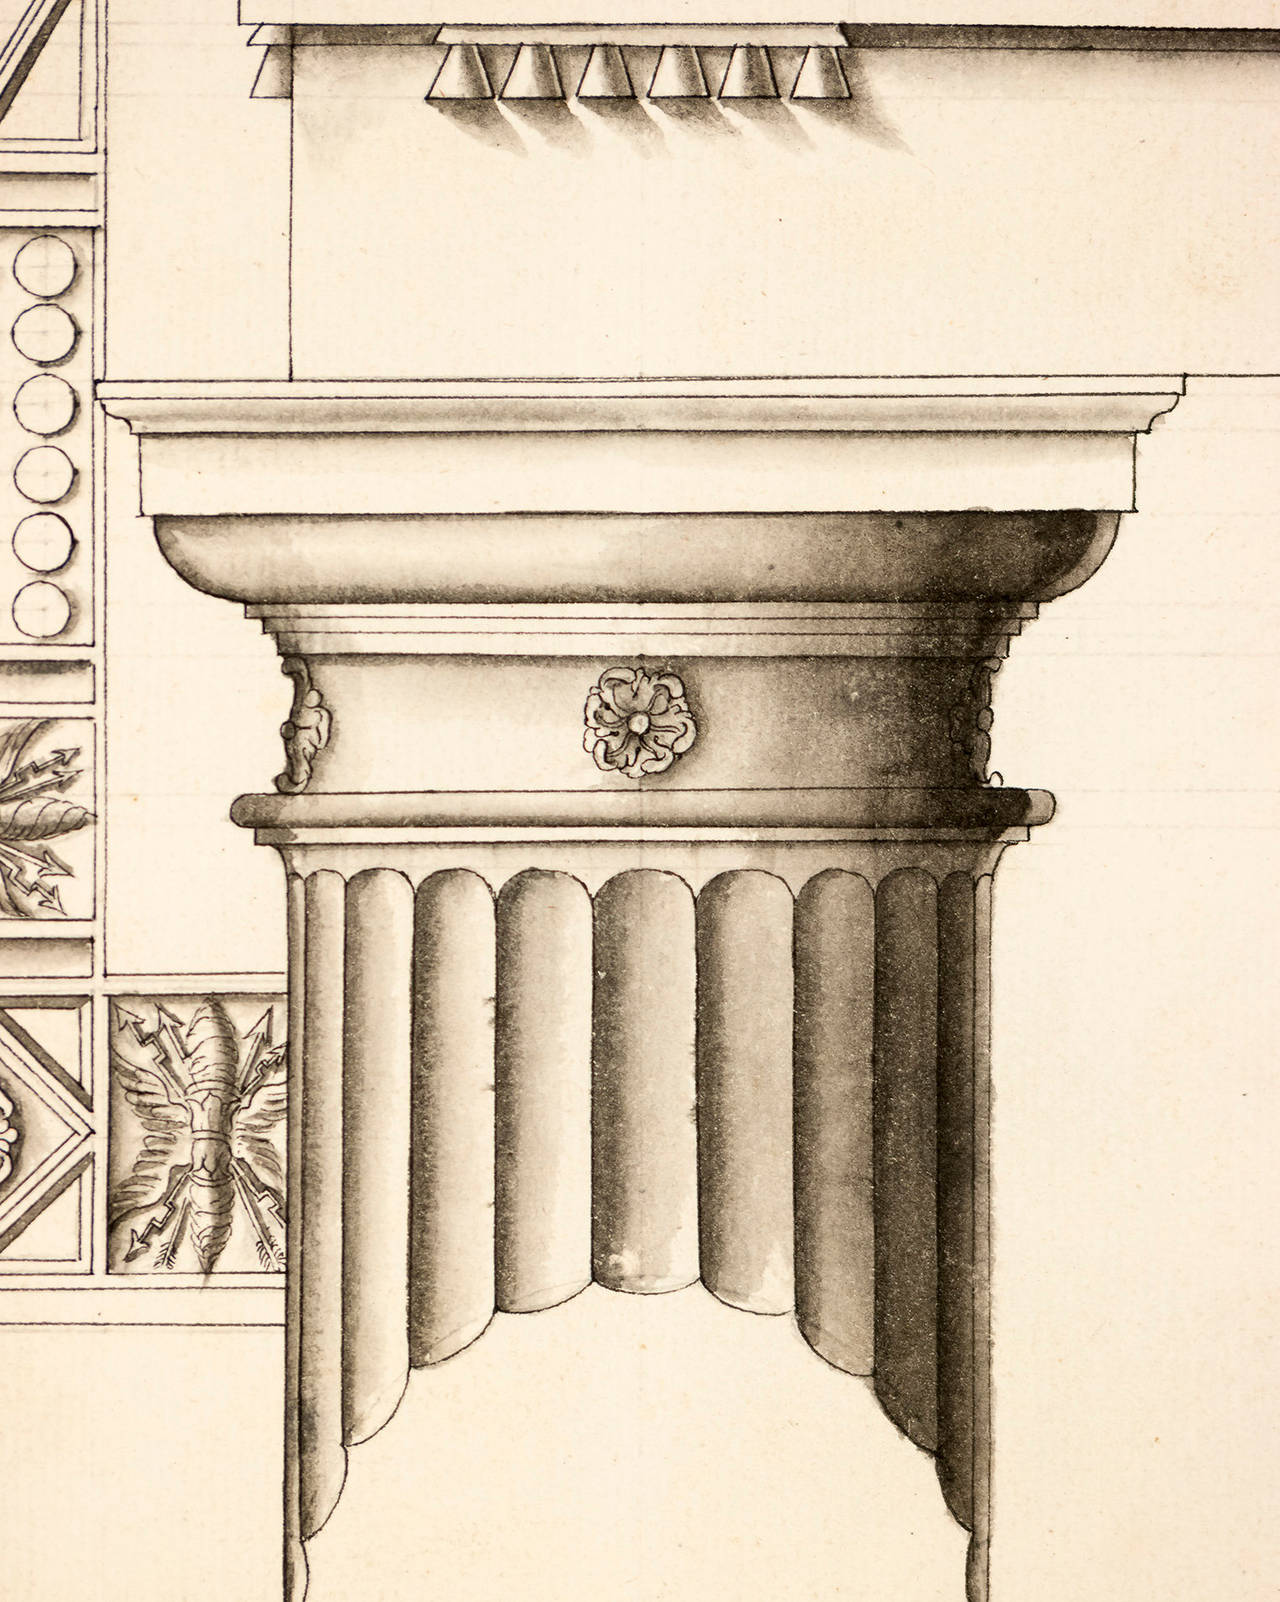 Doric Columns from the Theater of Marcella in Rome - Print by Unknown